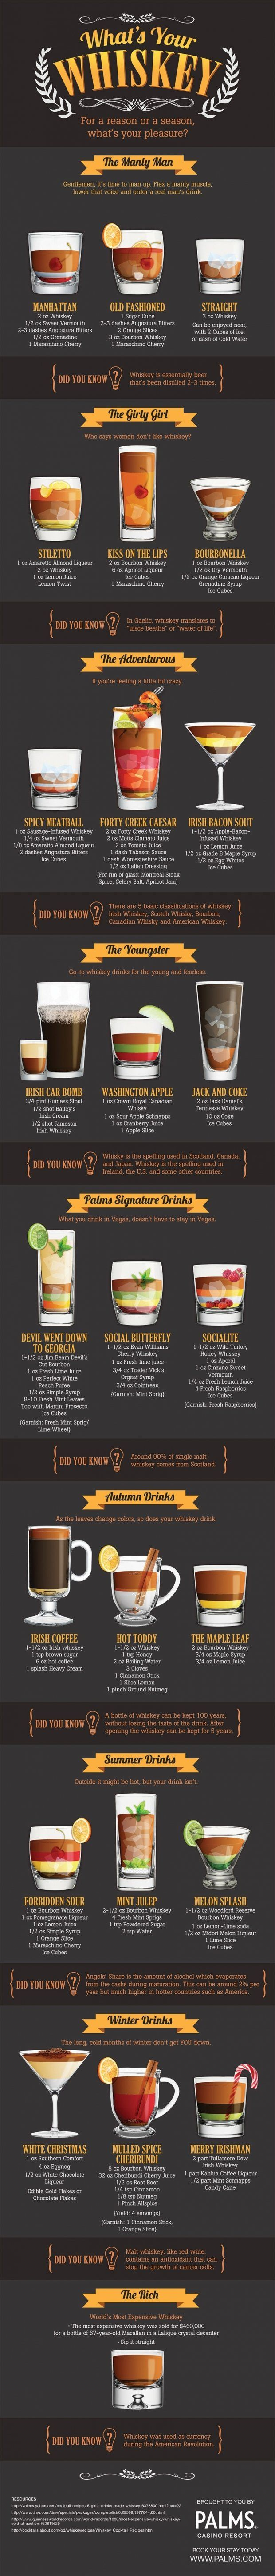 What's Your Whiskey infographic #alcohol #PartyDrinking